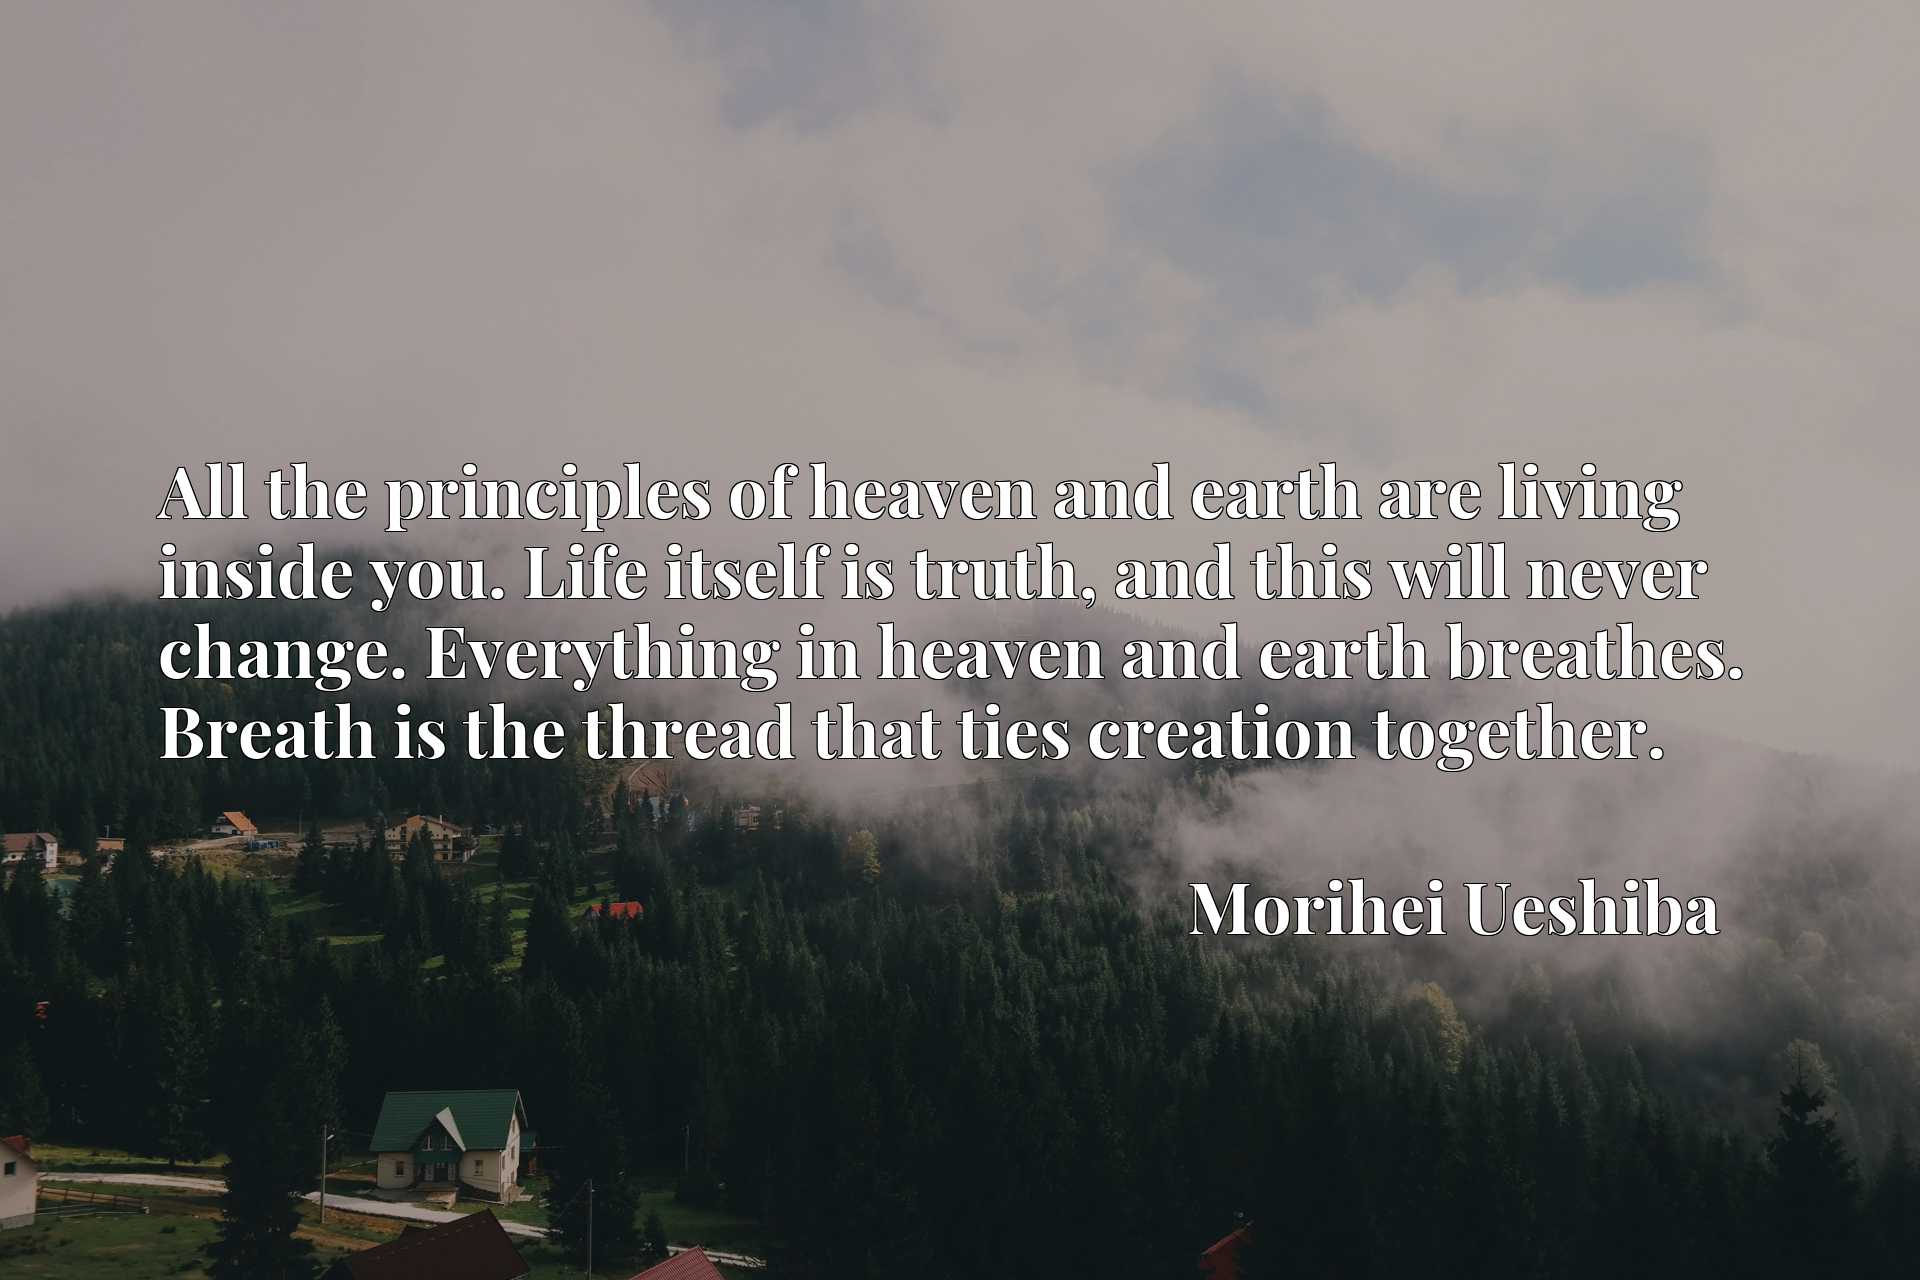 All the principles of heaven and earth are living inside you. Life itself is truth, and this will never change. Everything in heaven and earth breathes. Breath is the thread that ties creation together.